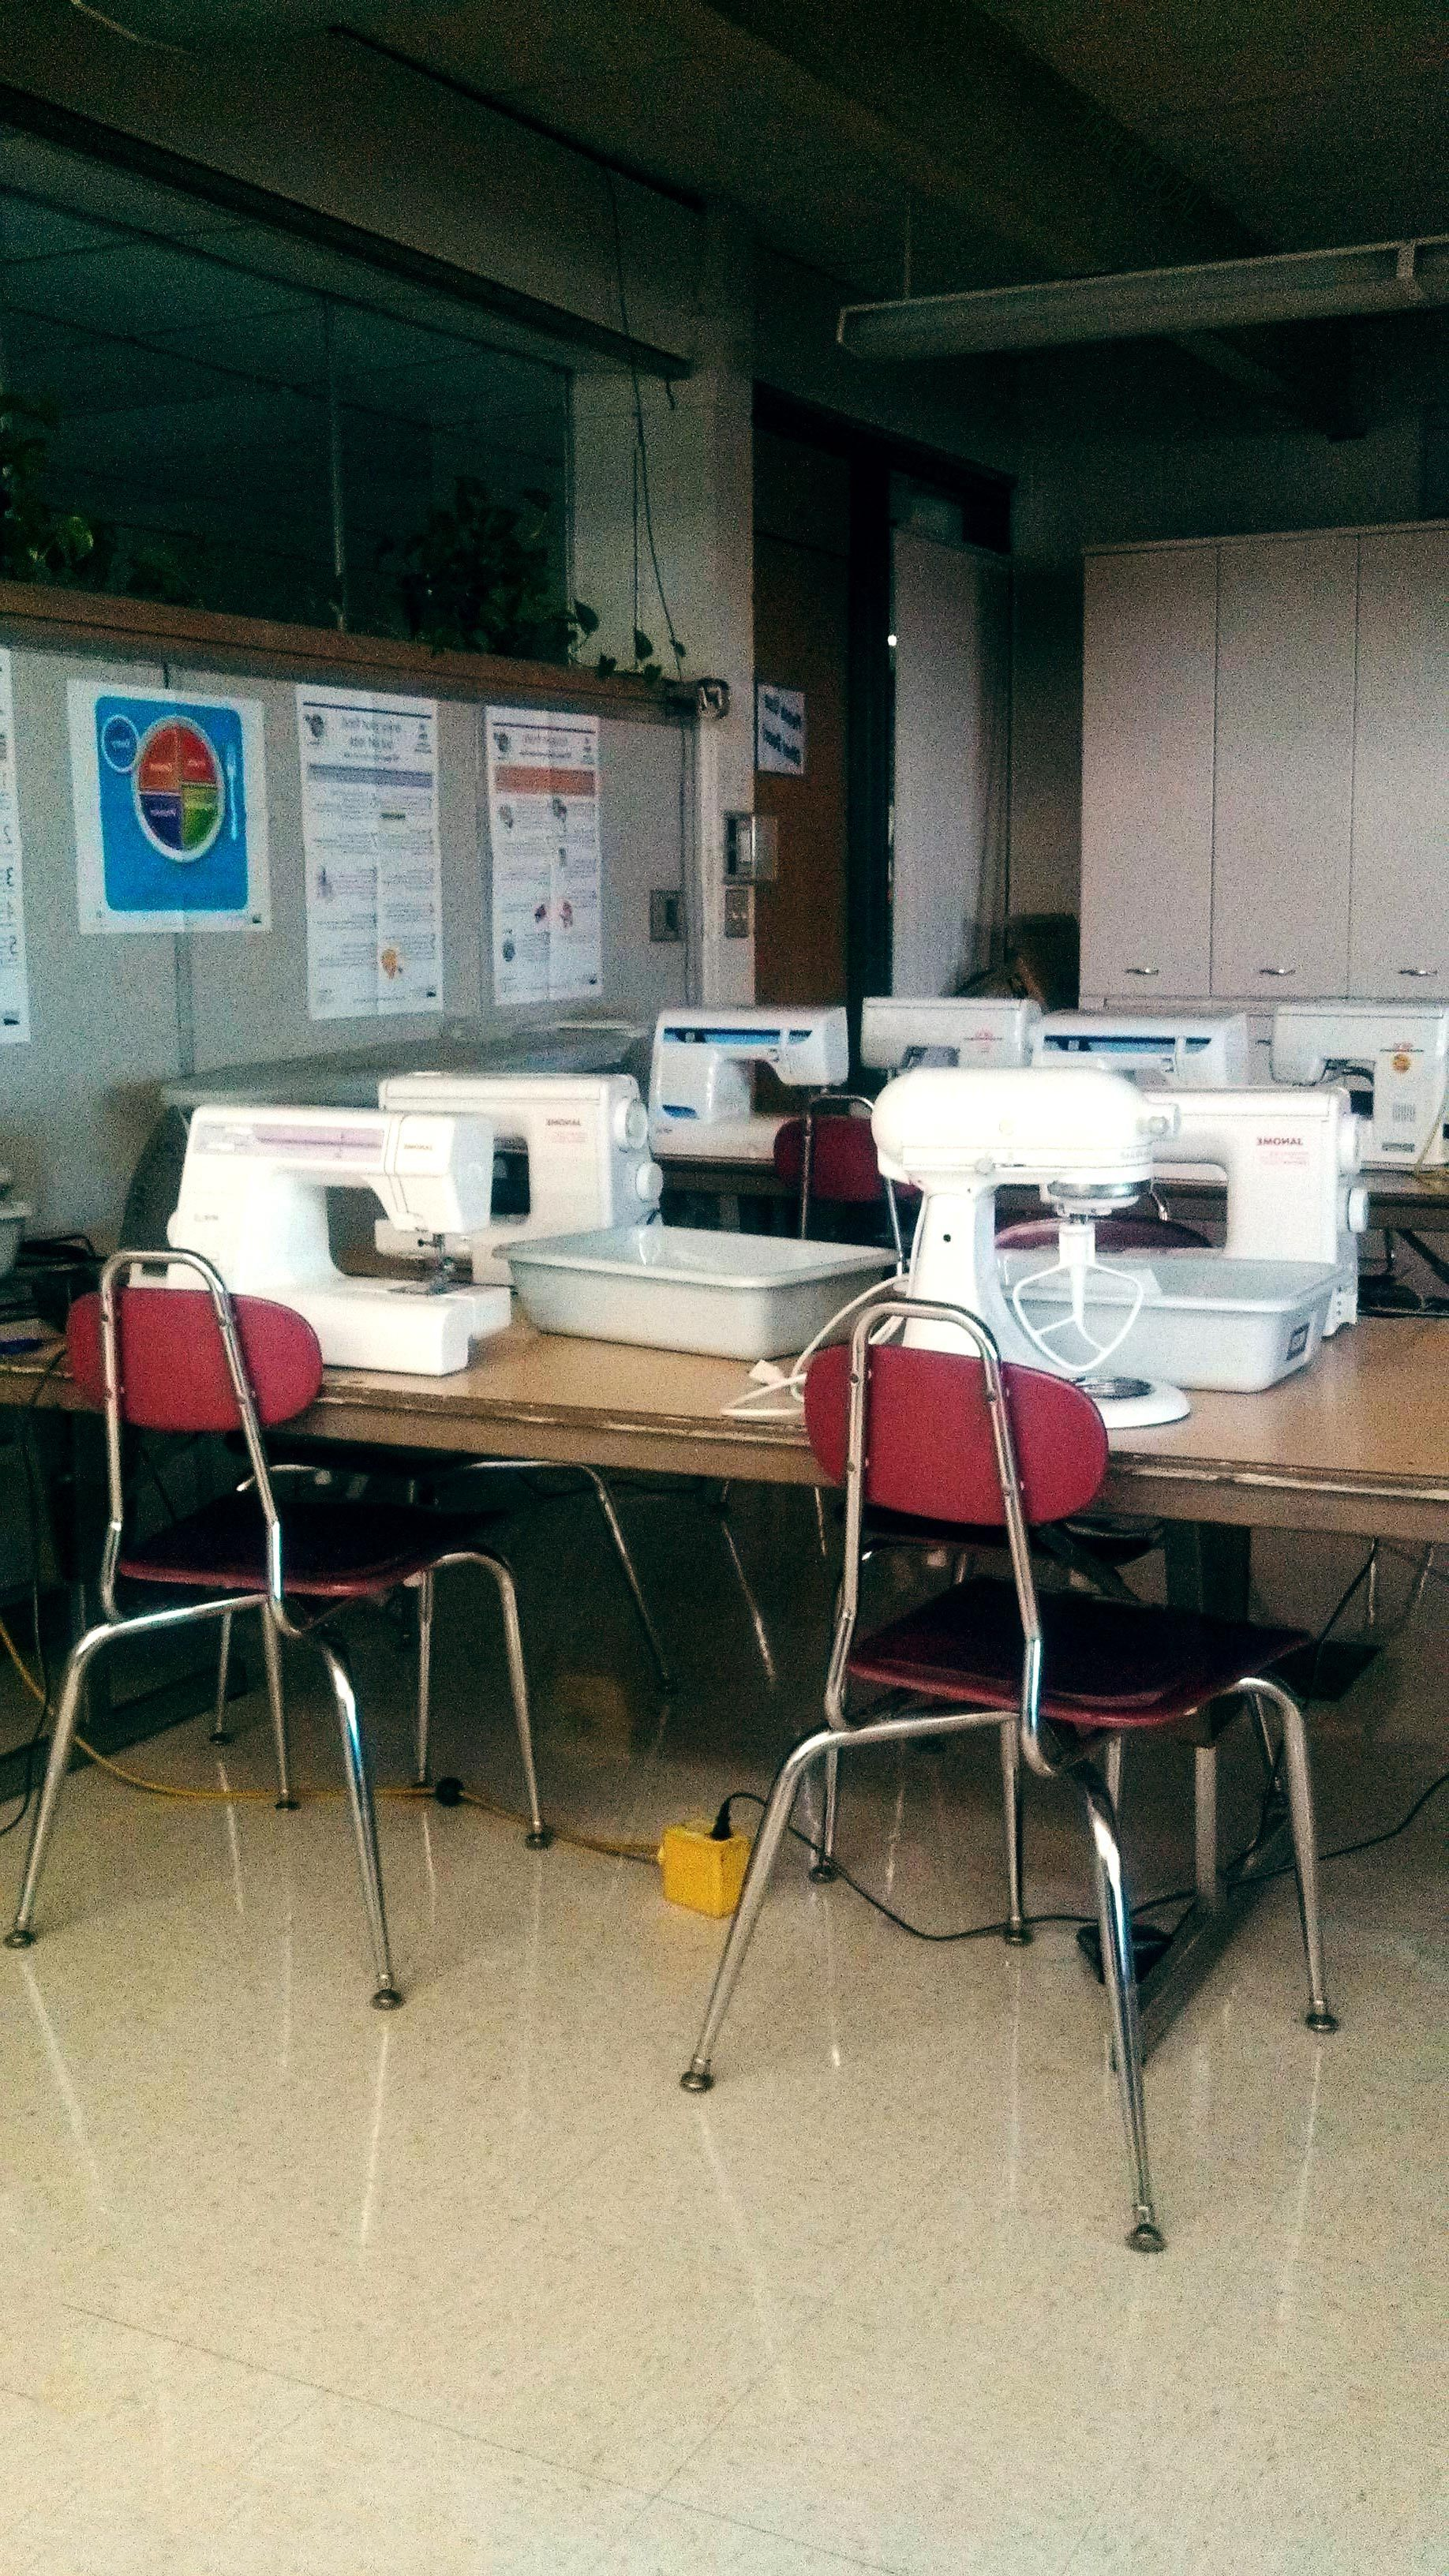 Day 29 and they still haven't noticed me.